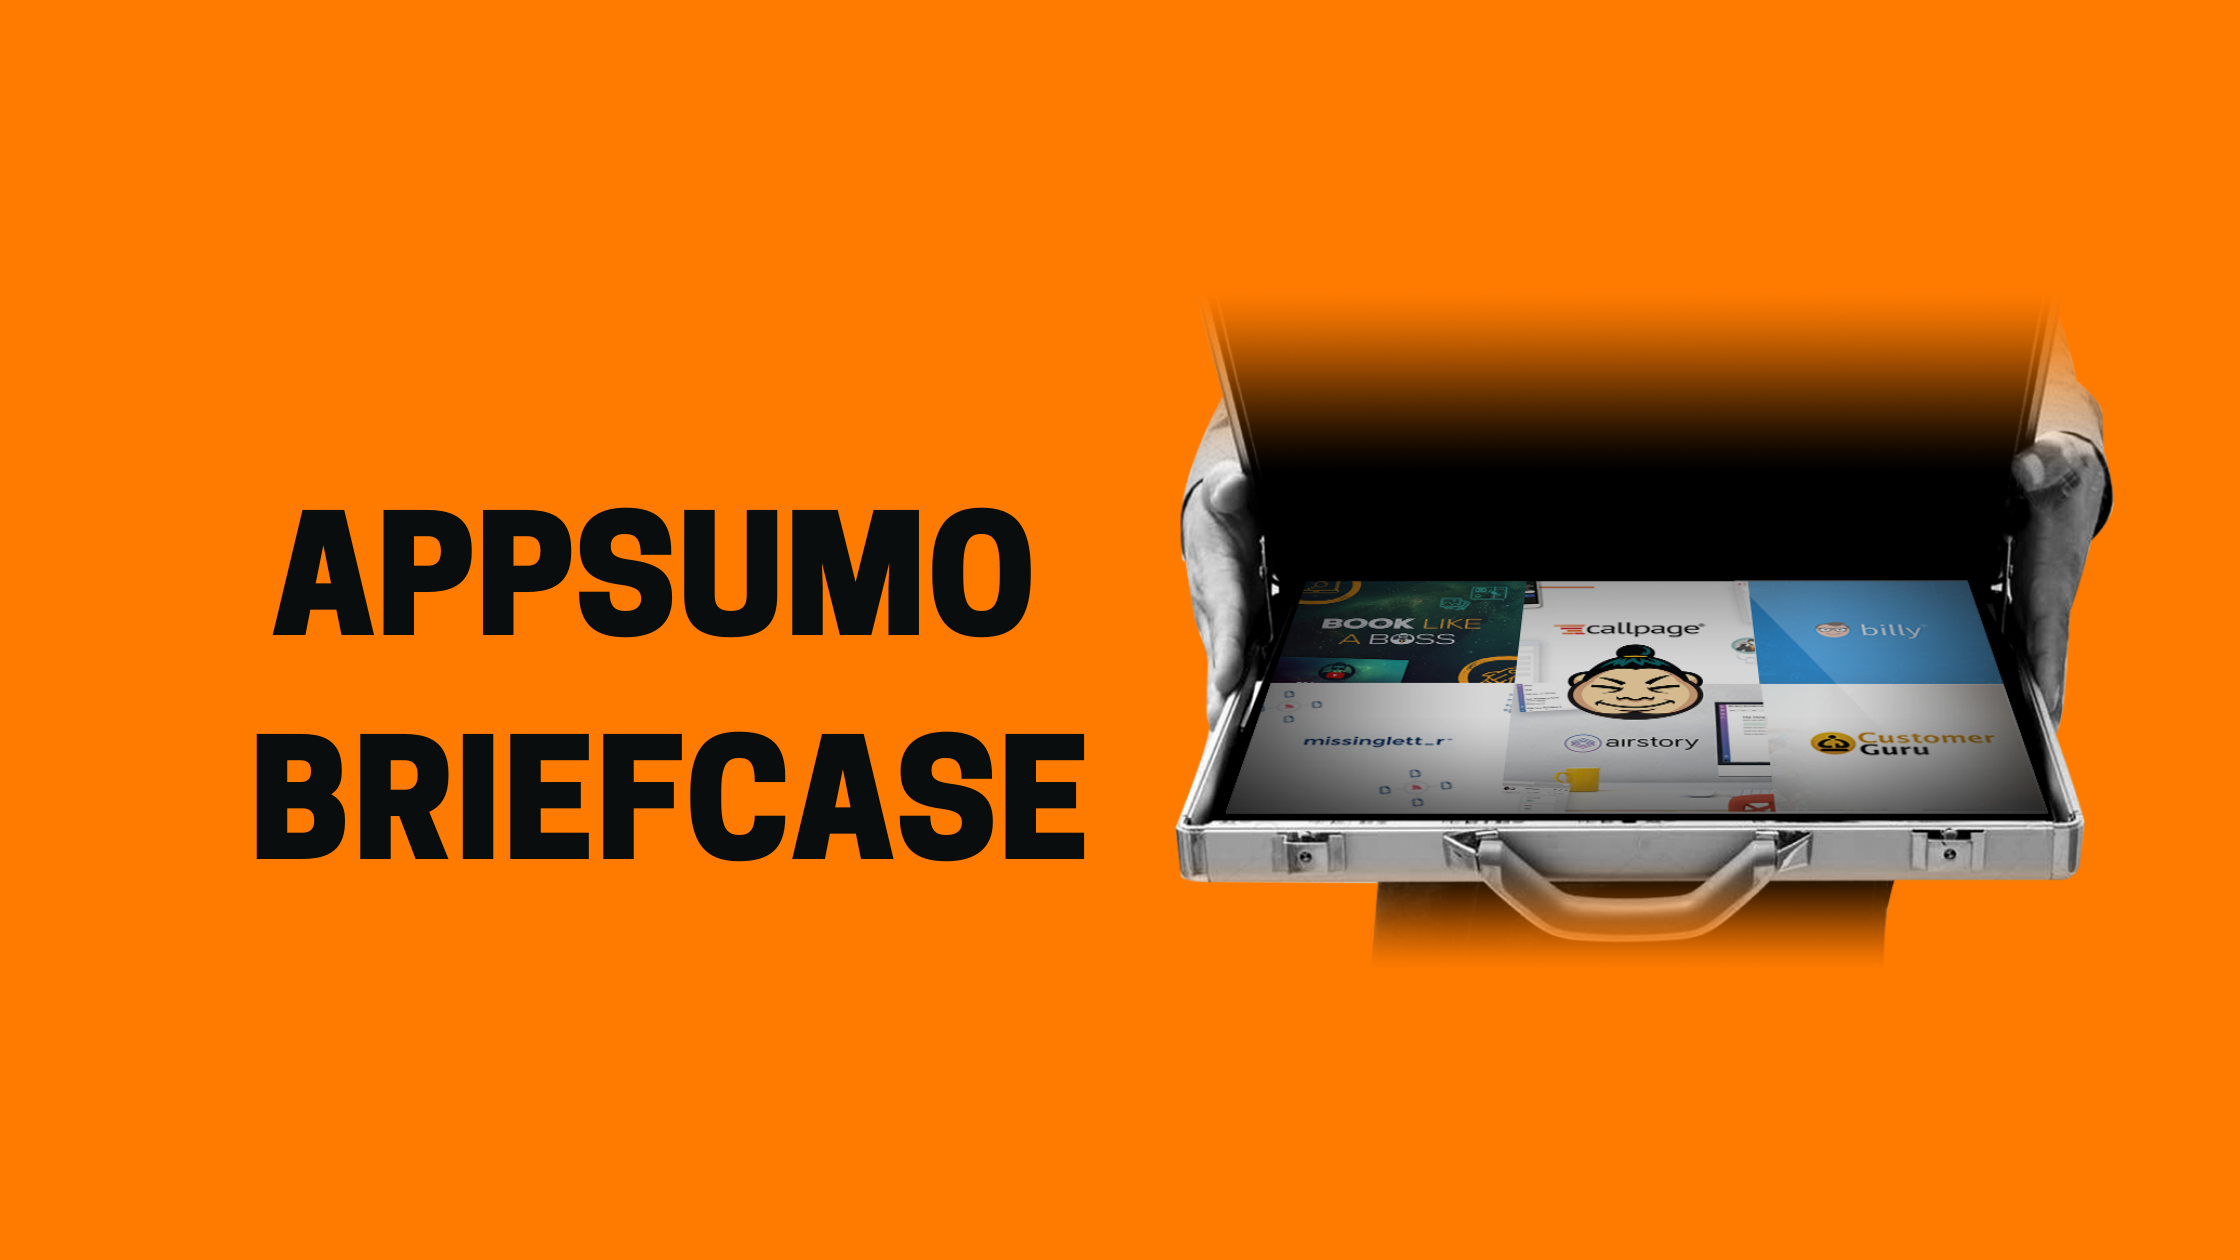 Briefcase by AppSumo: A detailed guide for incredible tools for Business